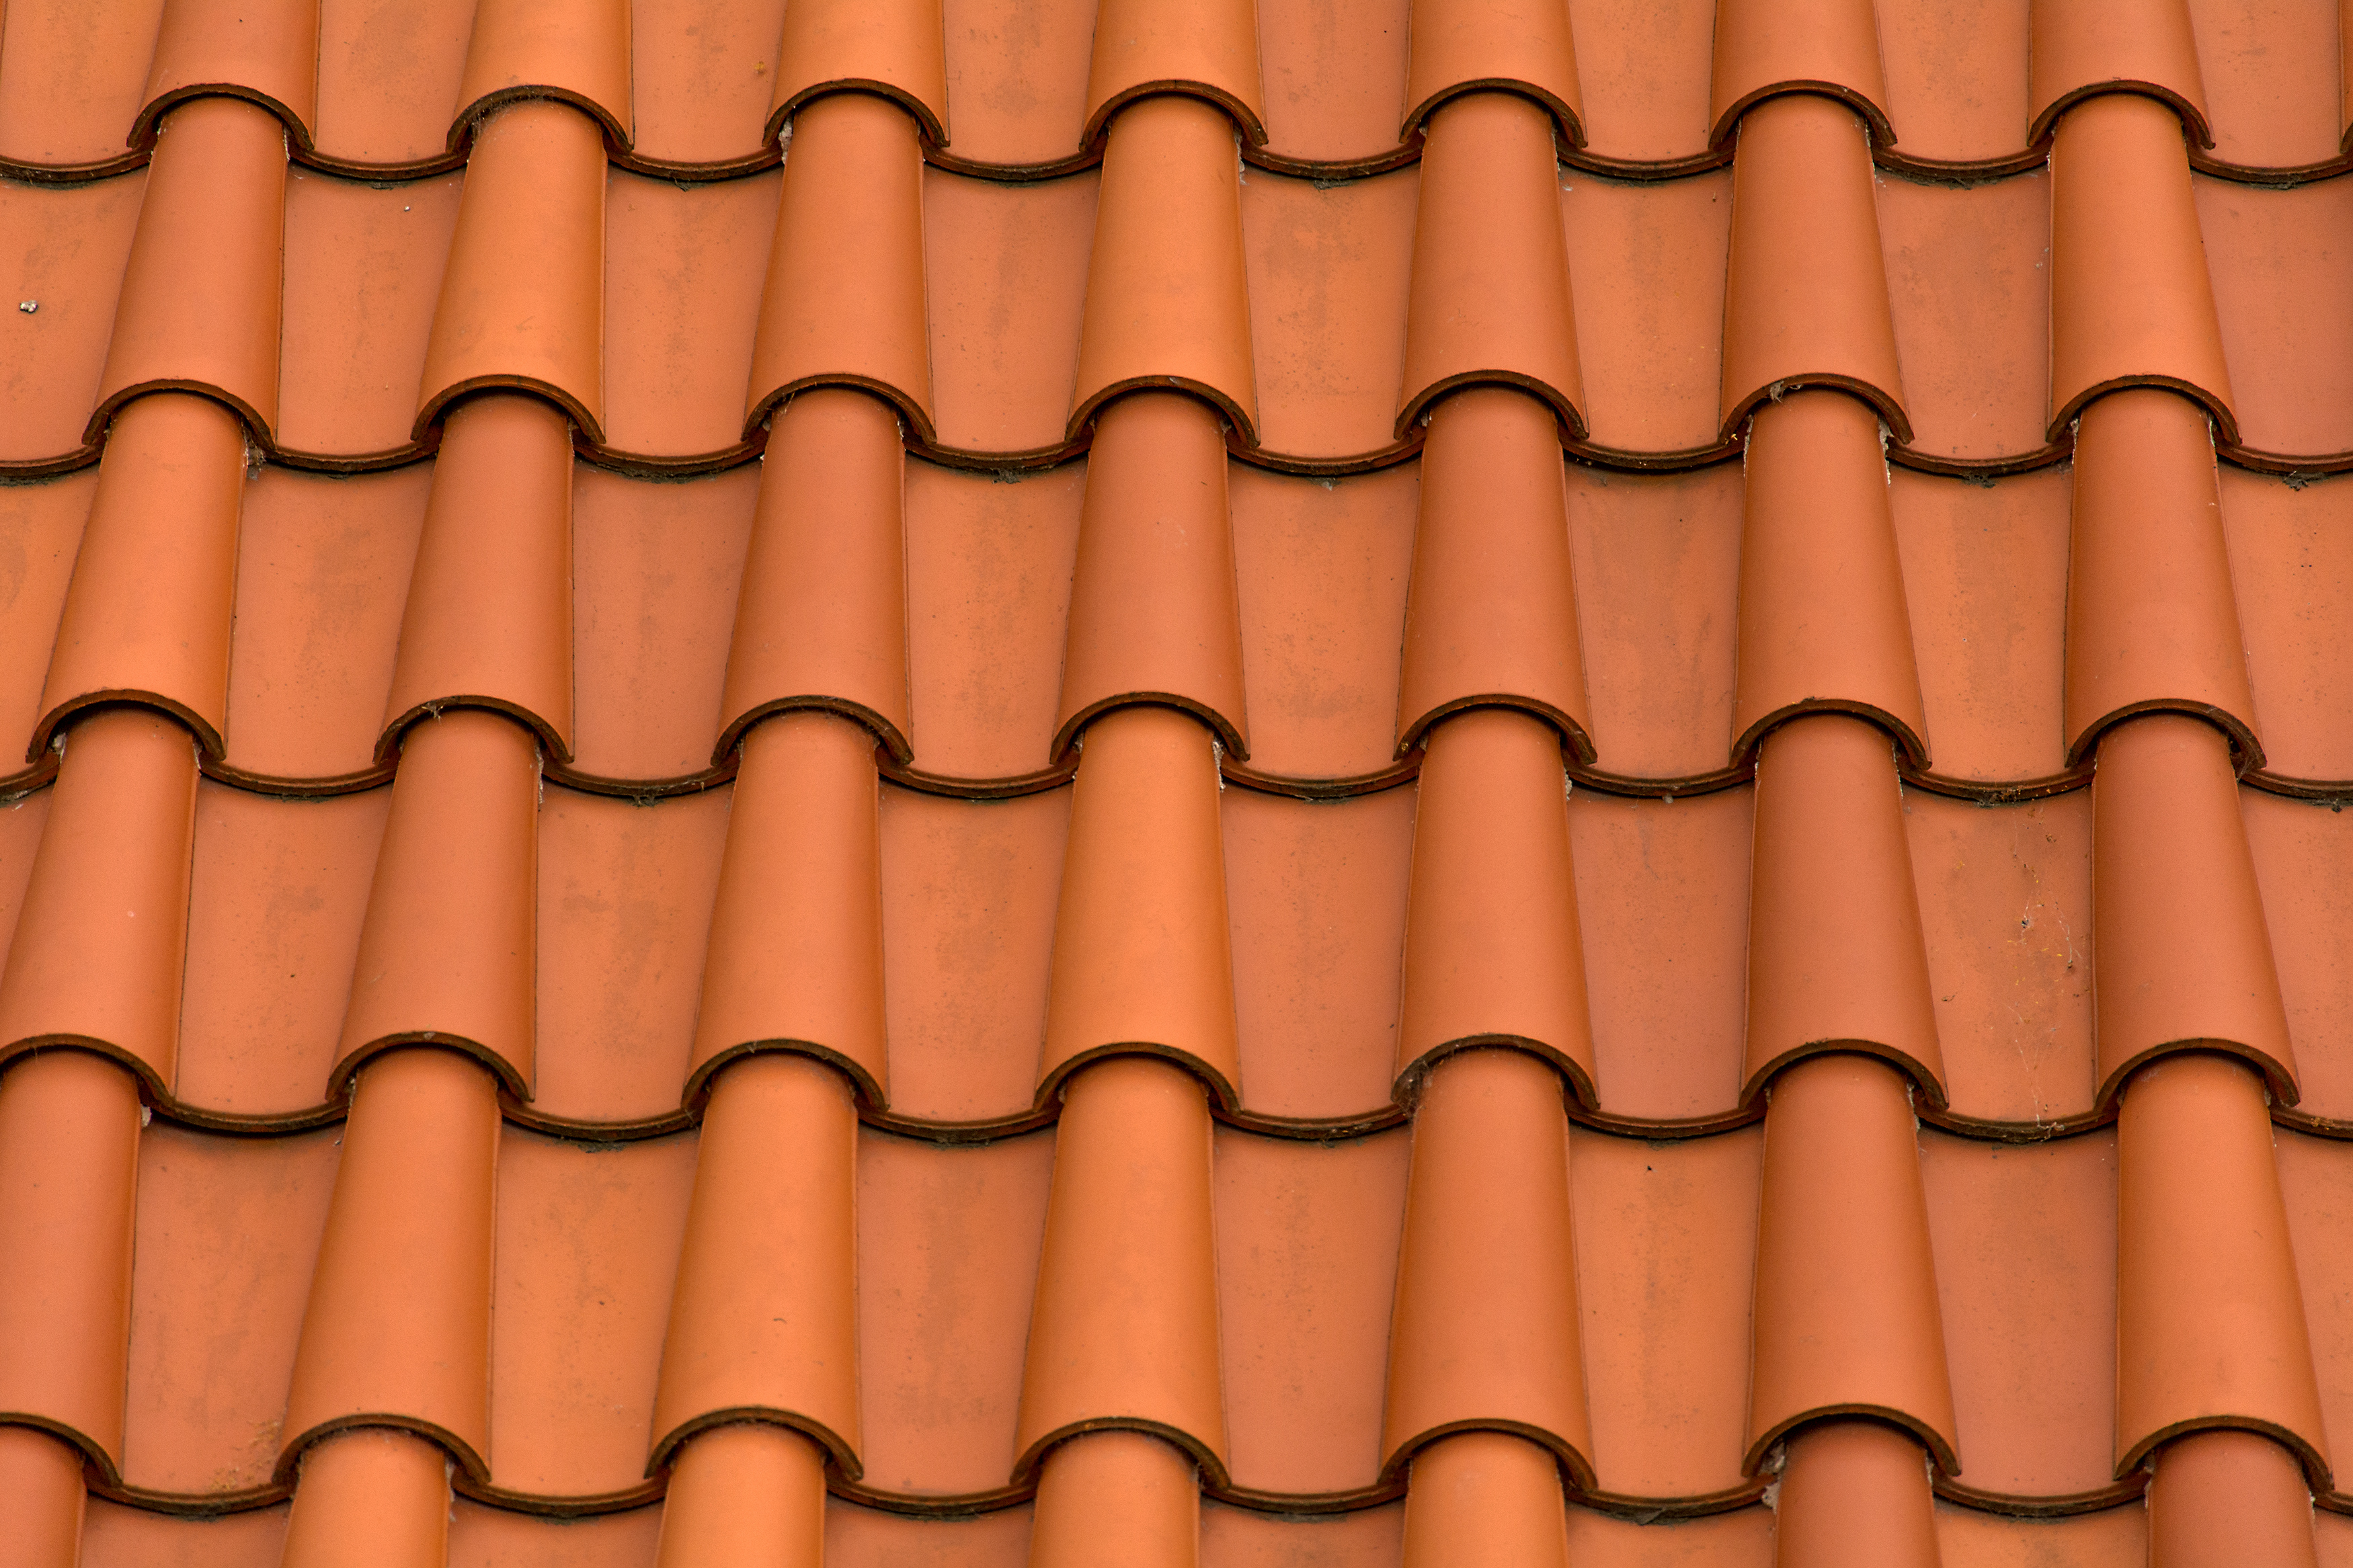 tiled-roof-pattern